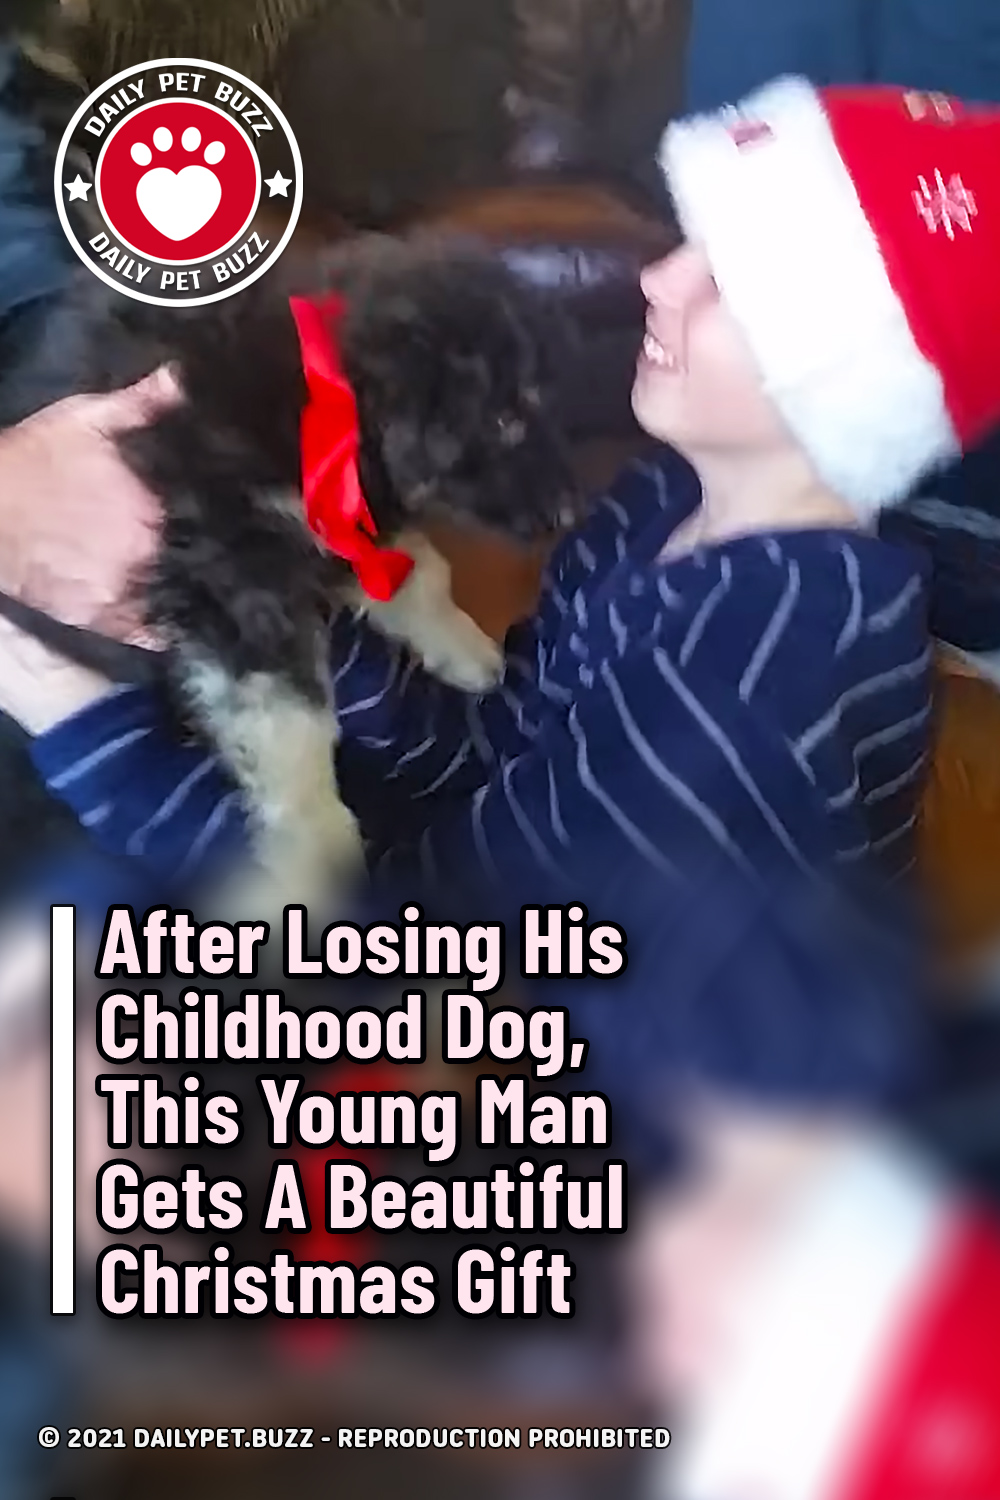 After Losing His Childhood Dog, This Young Man Gets A Beautiful Christmas Gift